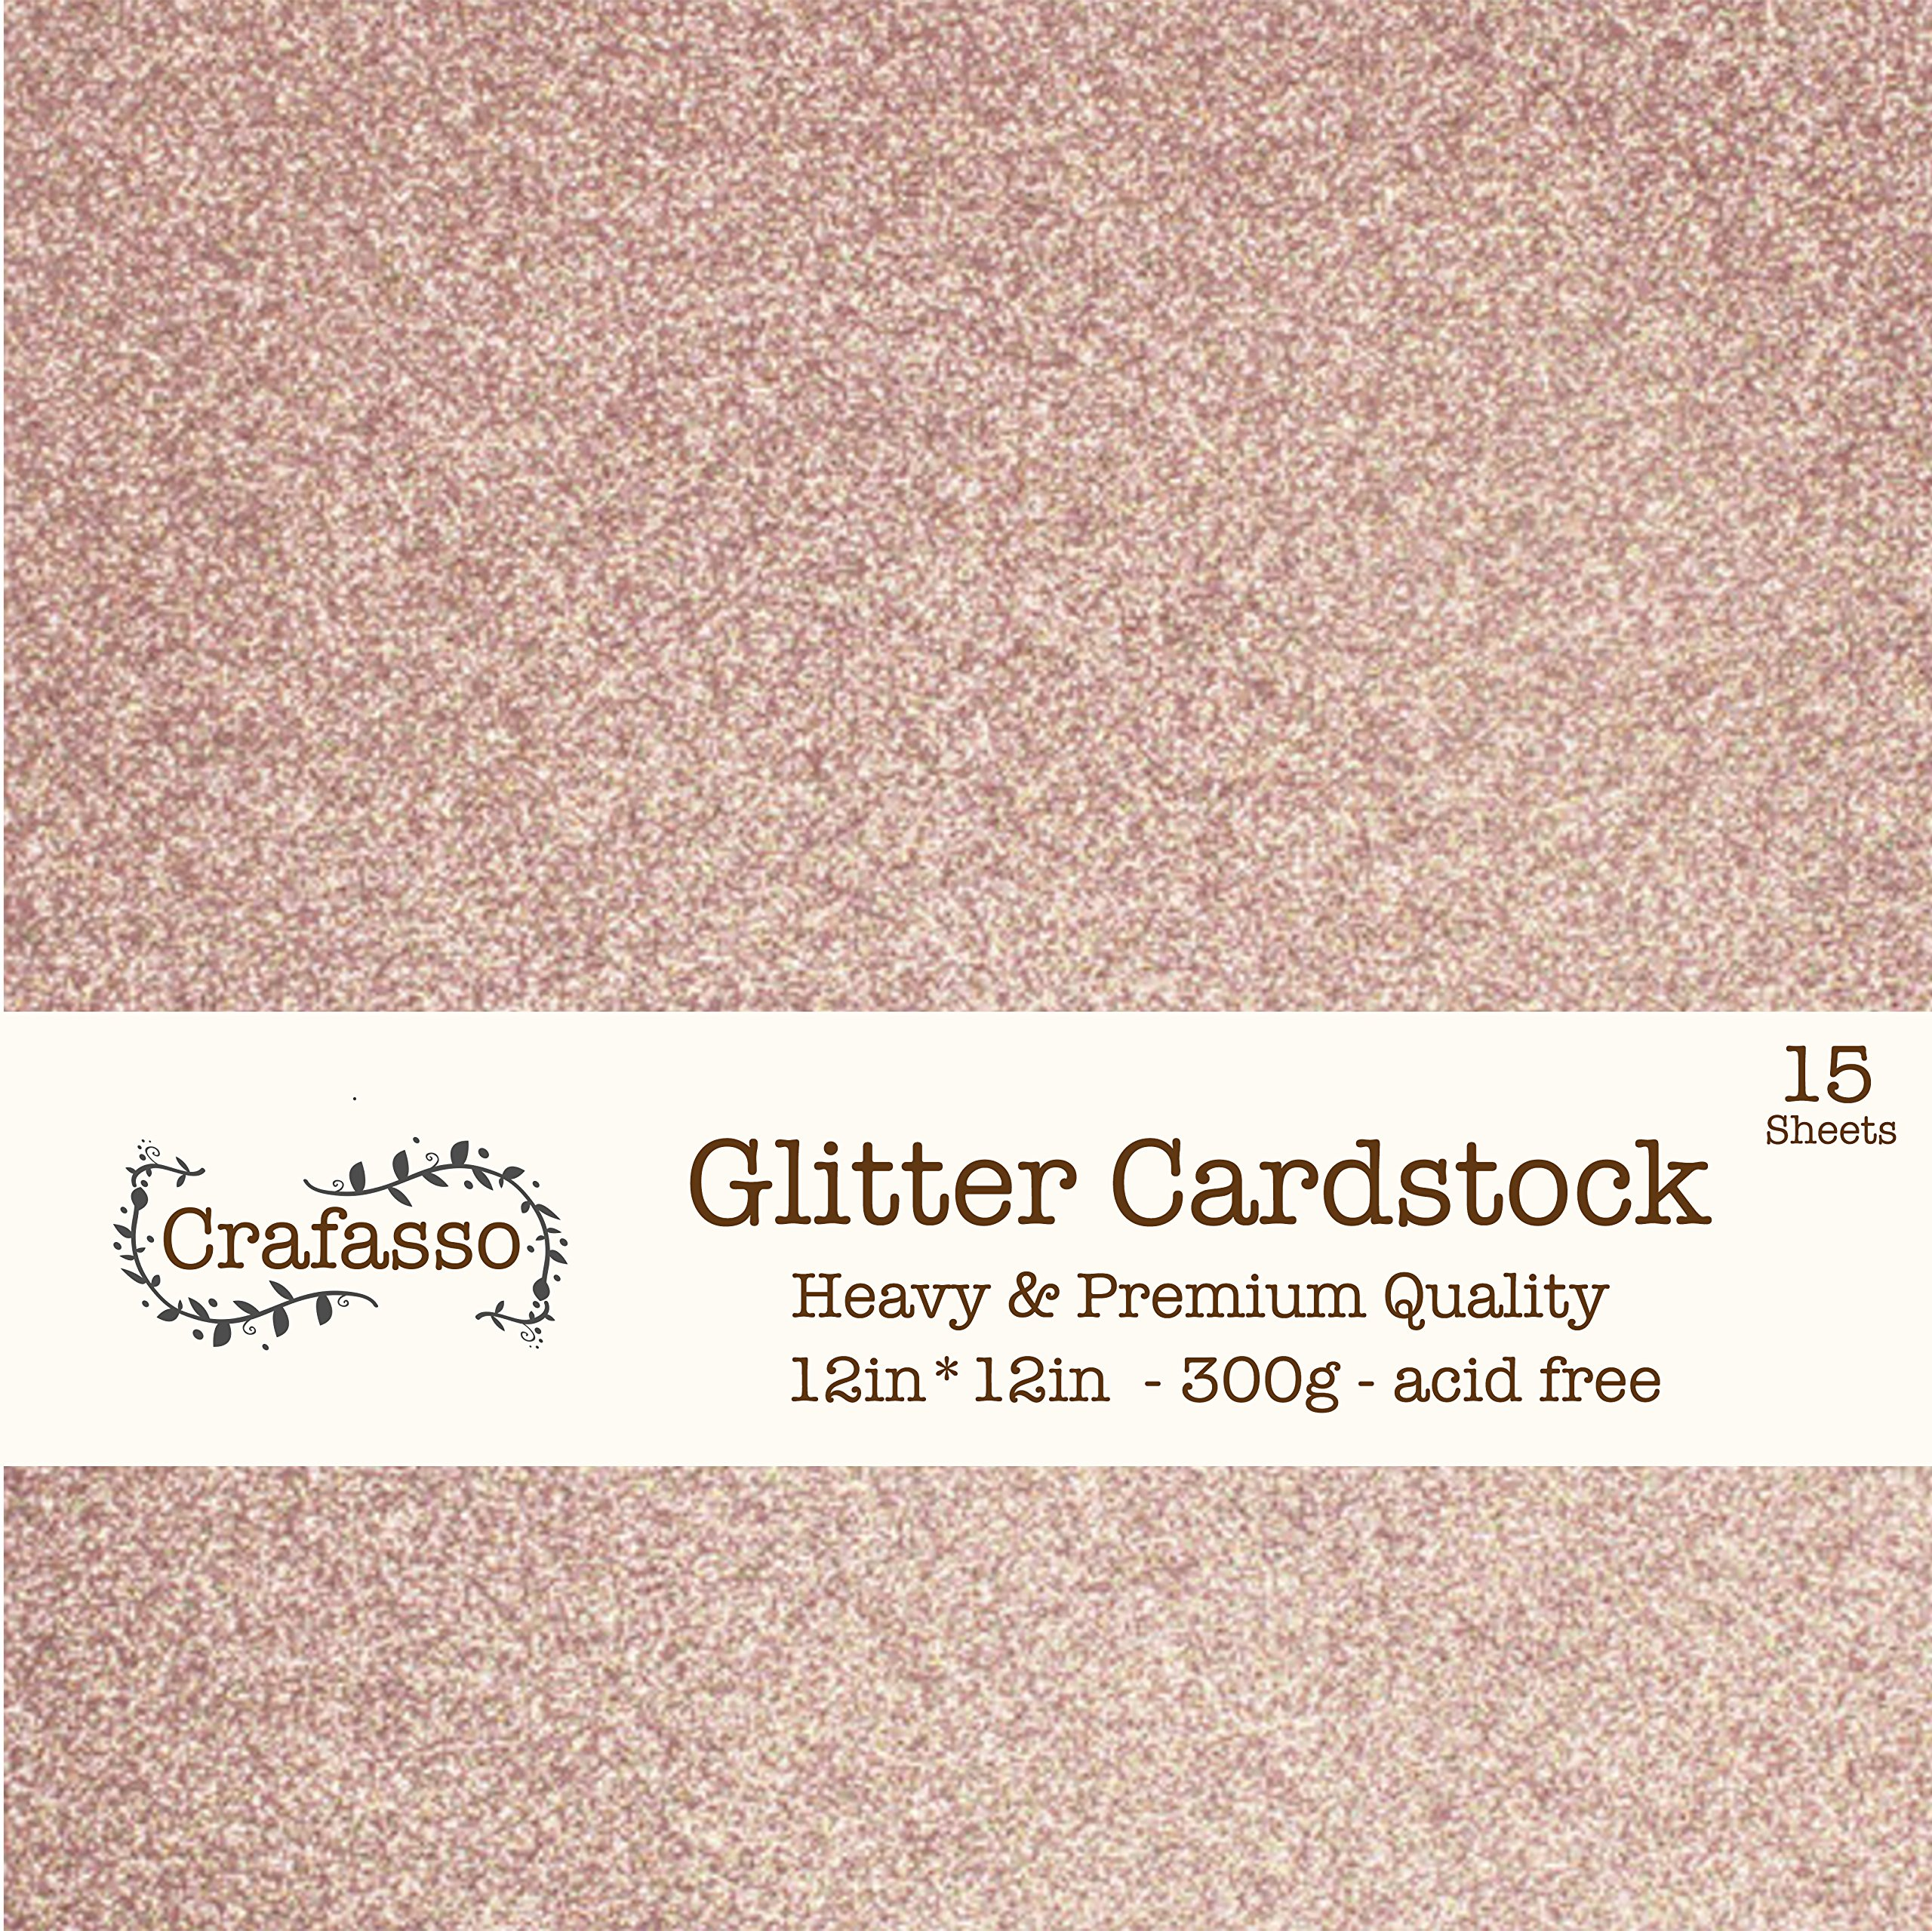 Crafasso 12'' x 12'' 300gms Heavy & Premium cardstock, 15 Sheets, Rose Gold